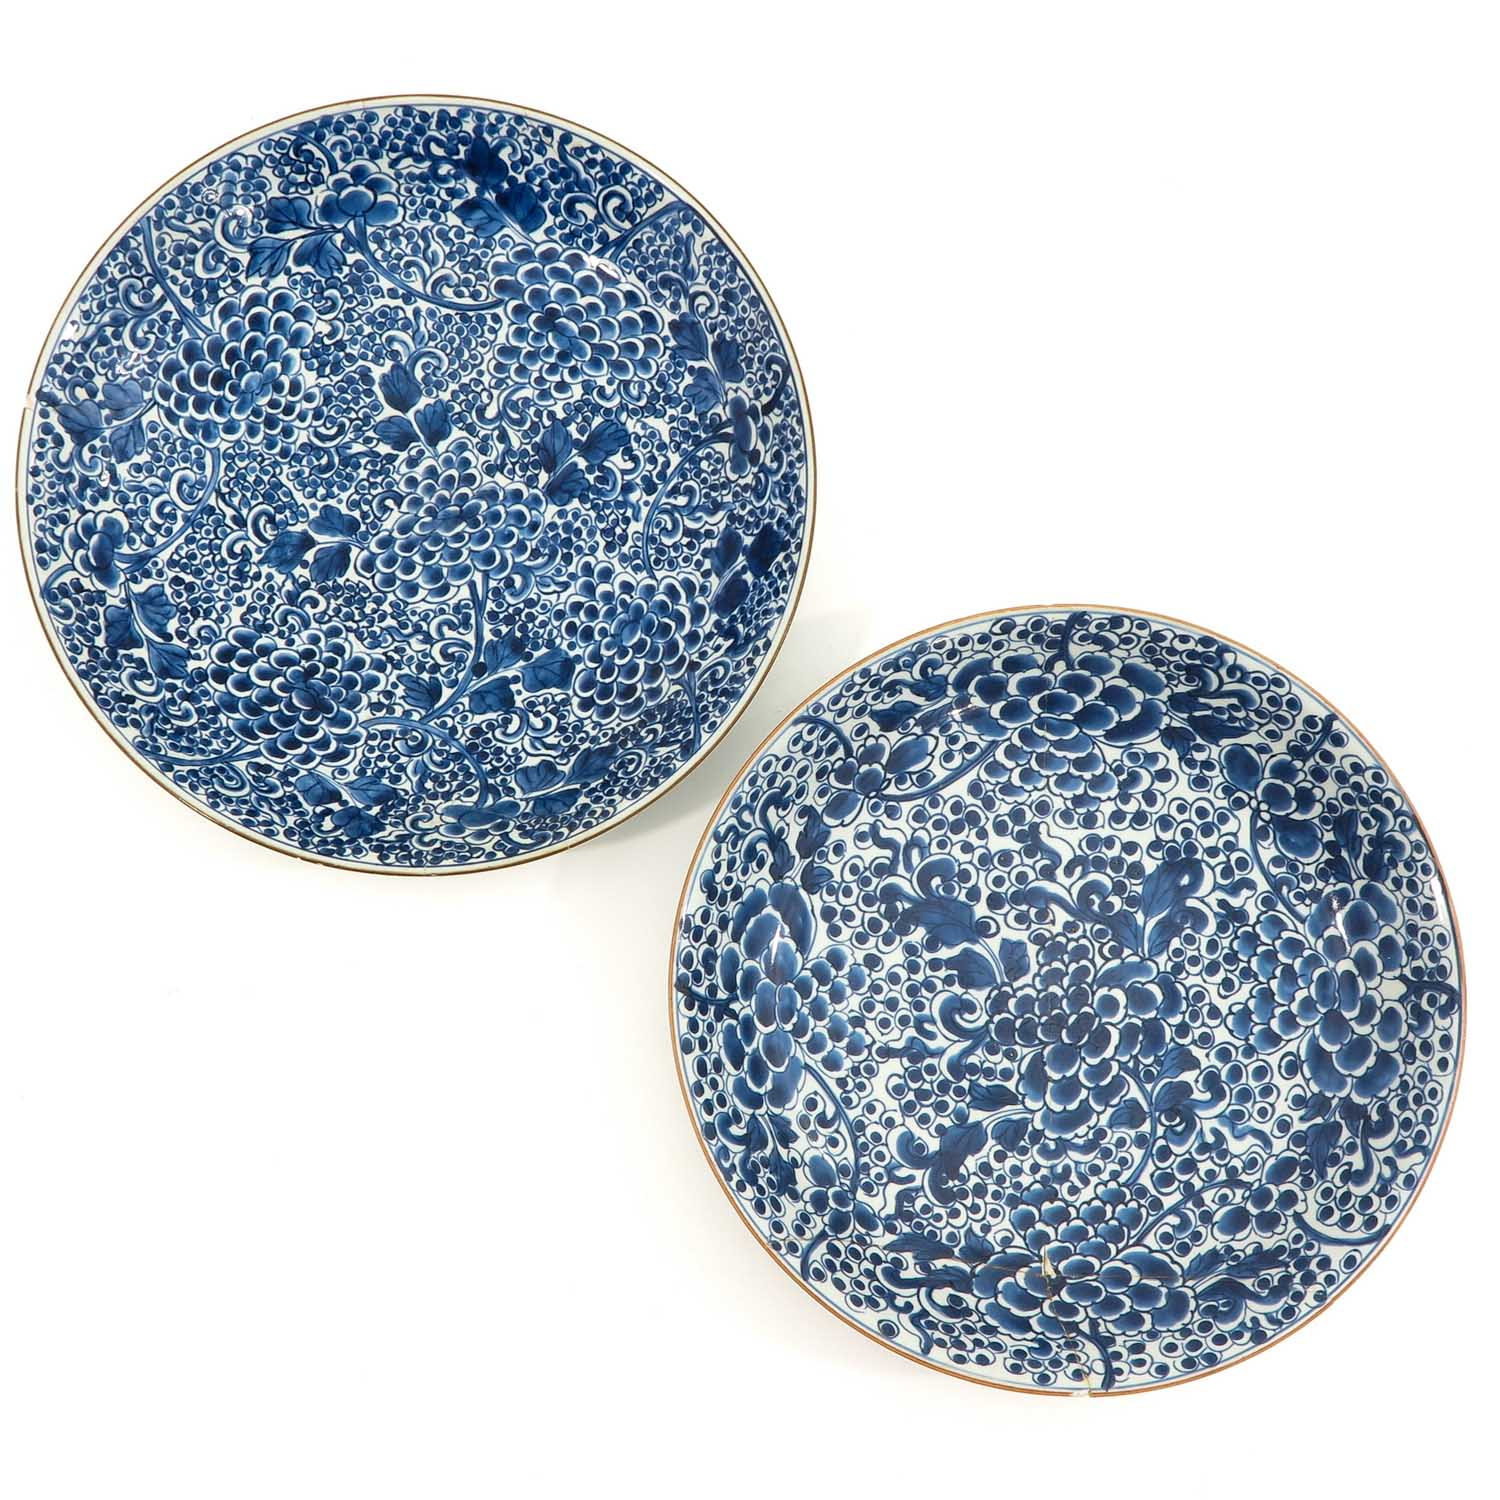 A Pair of Blue and White Chargers